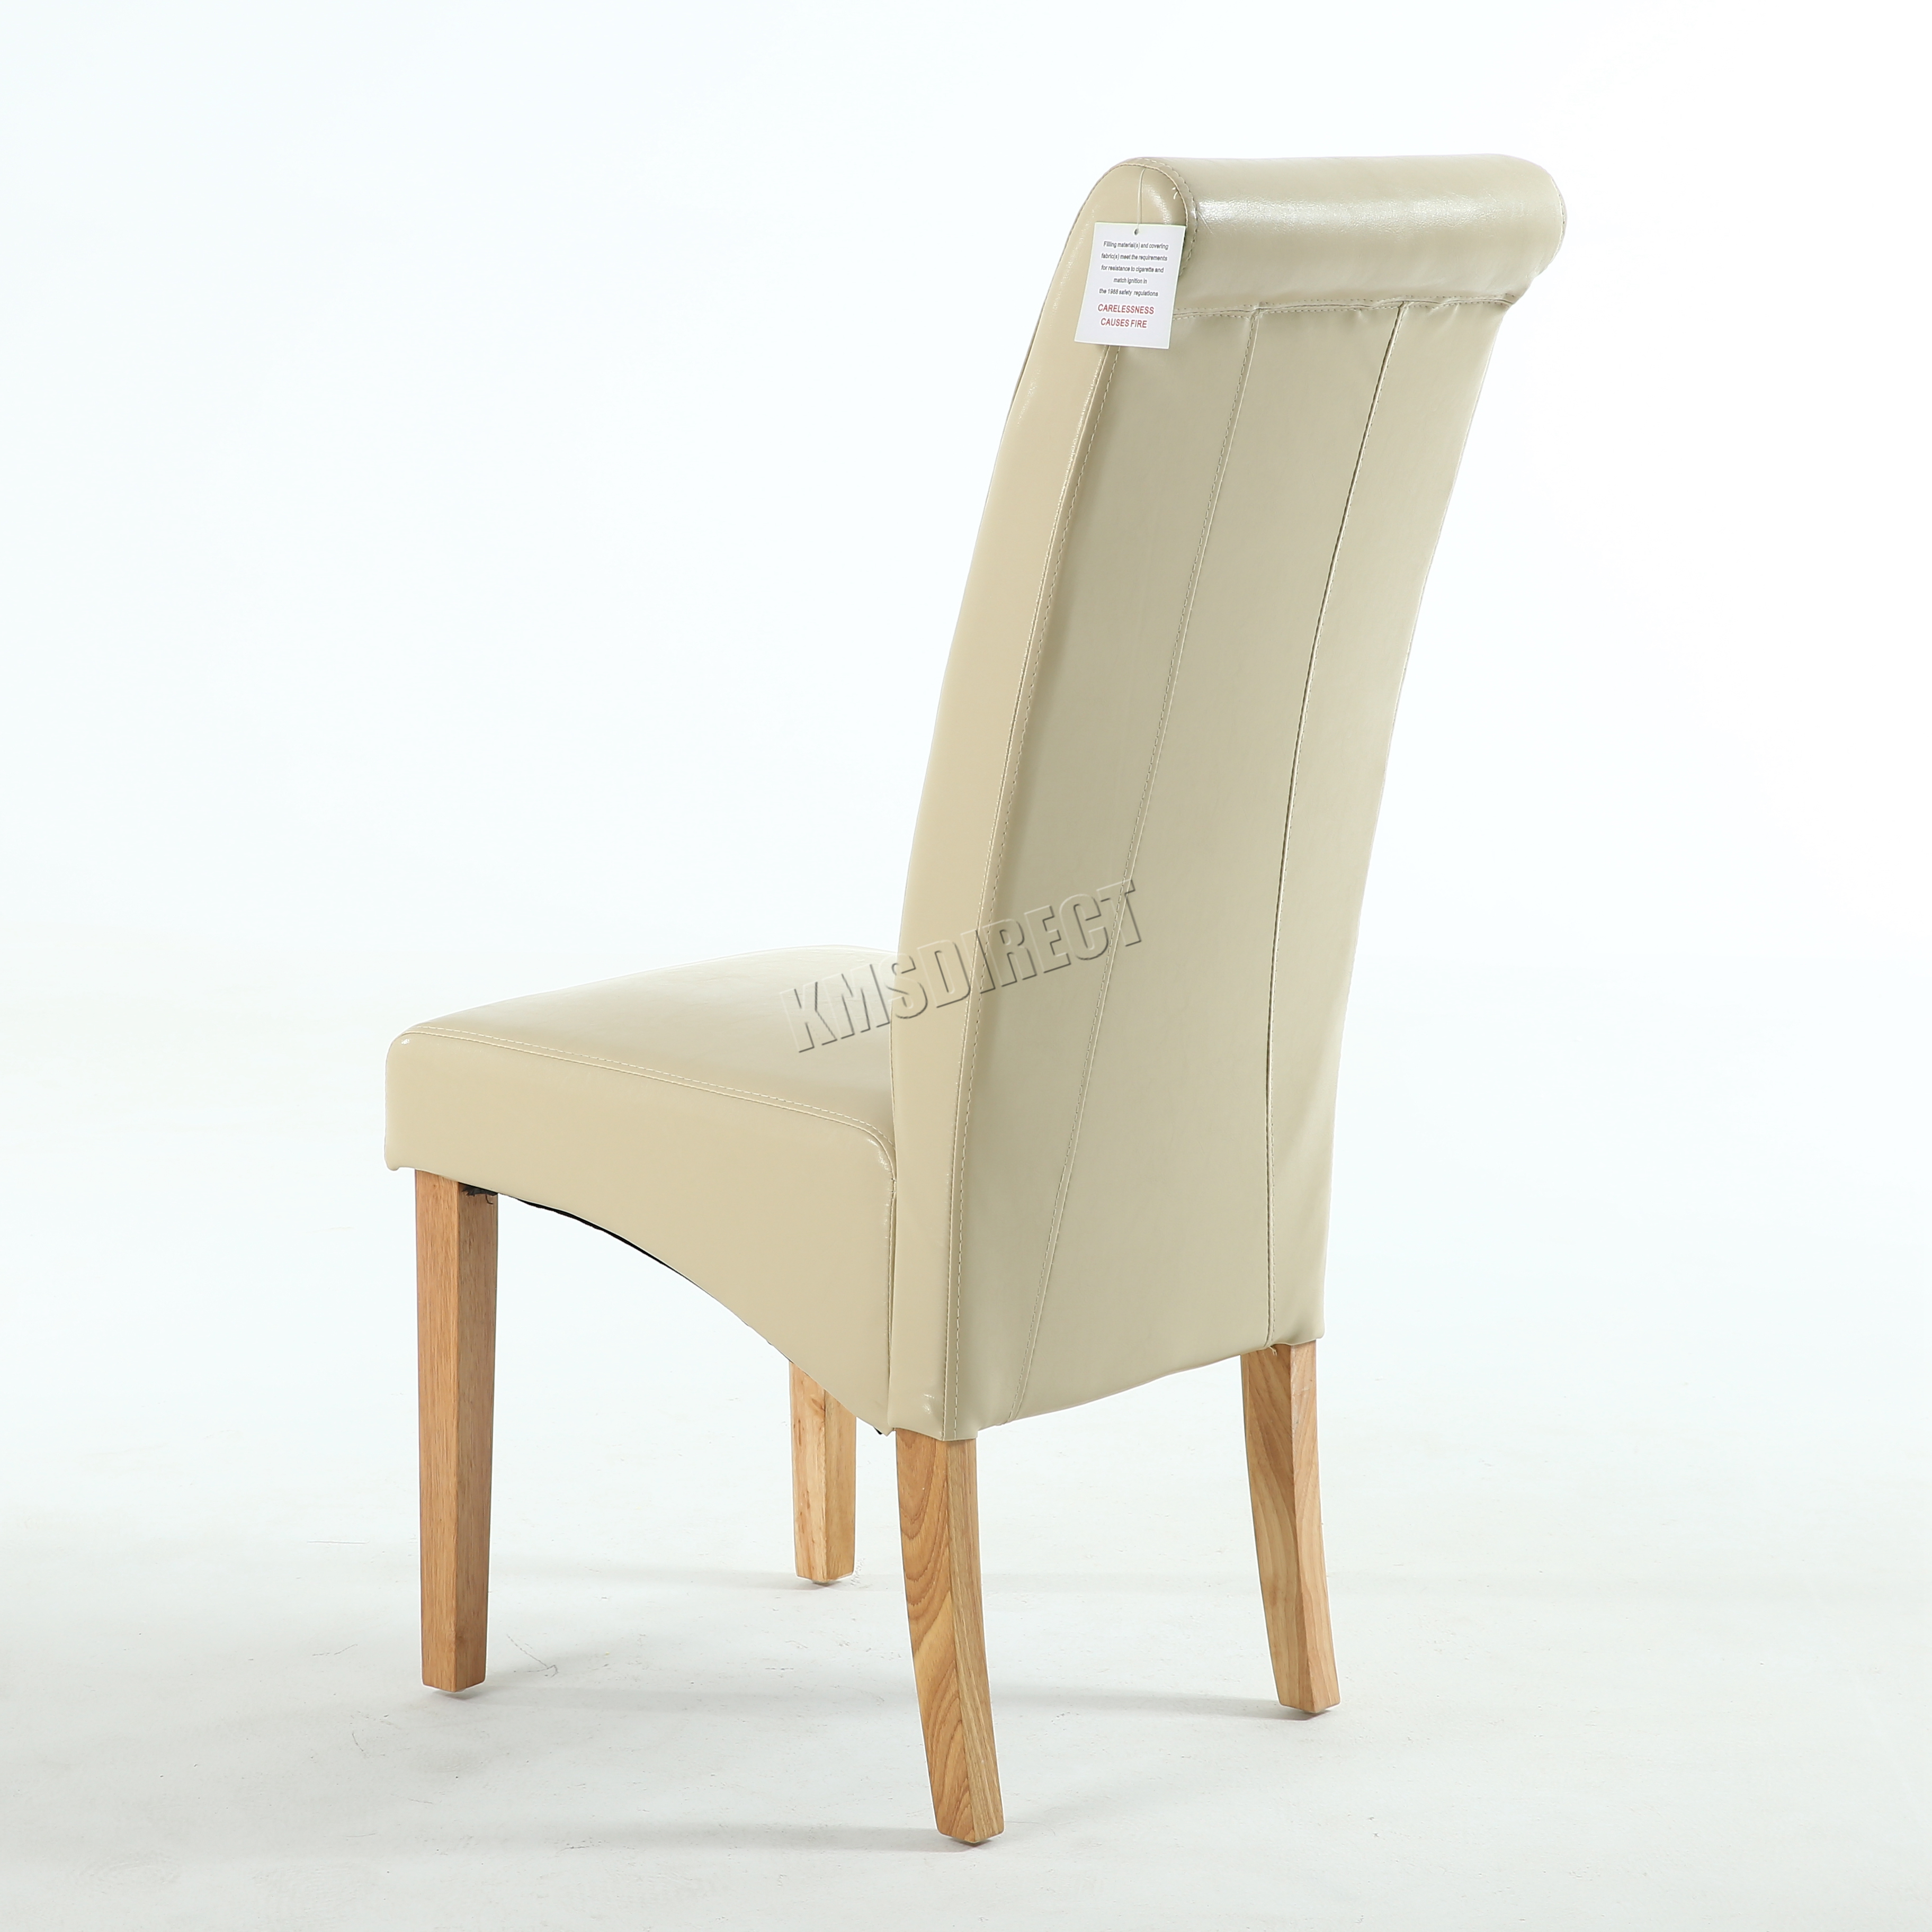 New Cream Faux Leather Dining Chairs Roll Top Scroll High ...